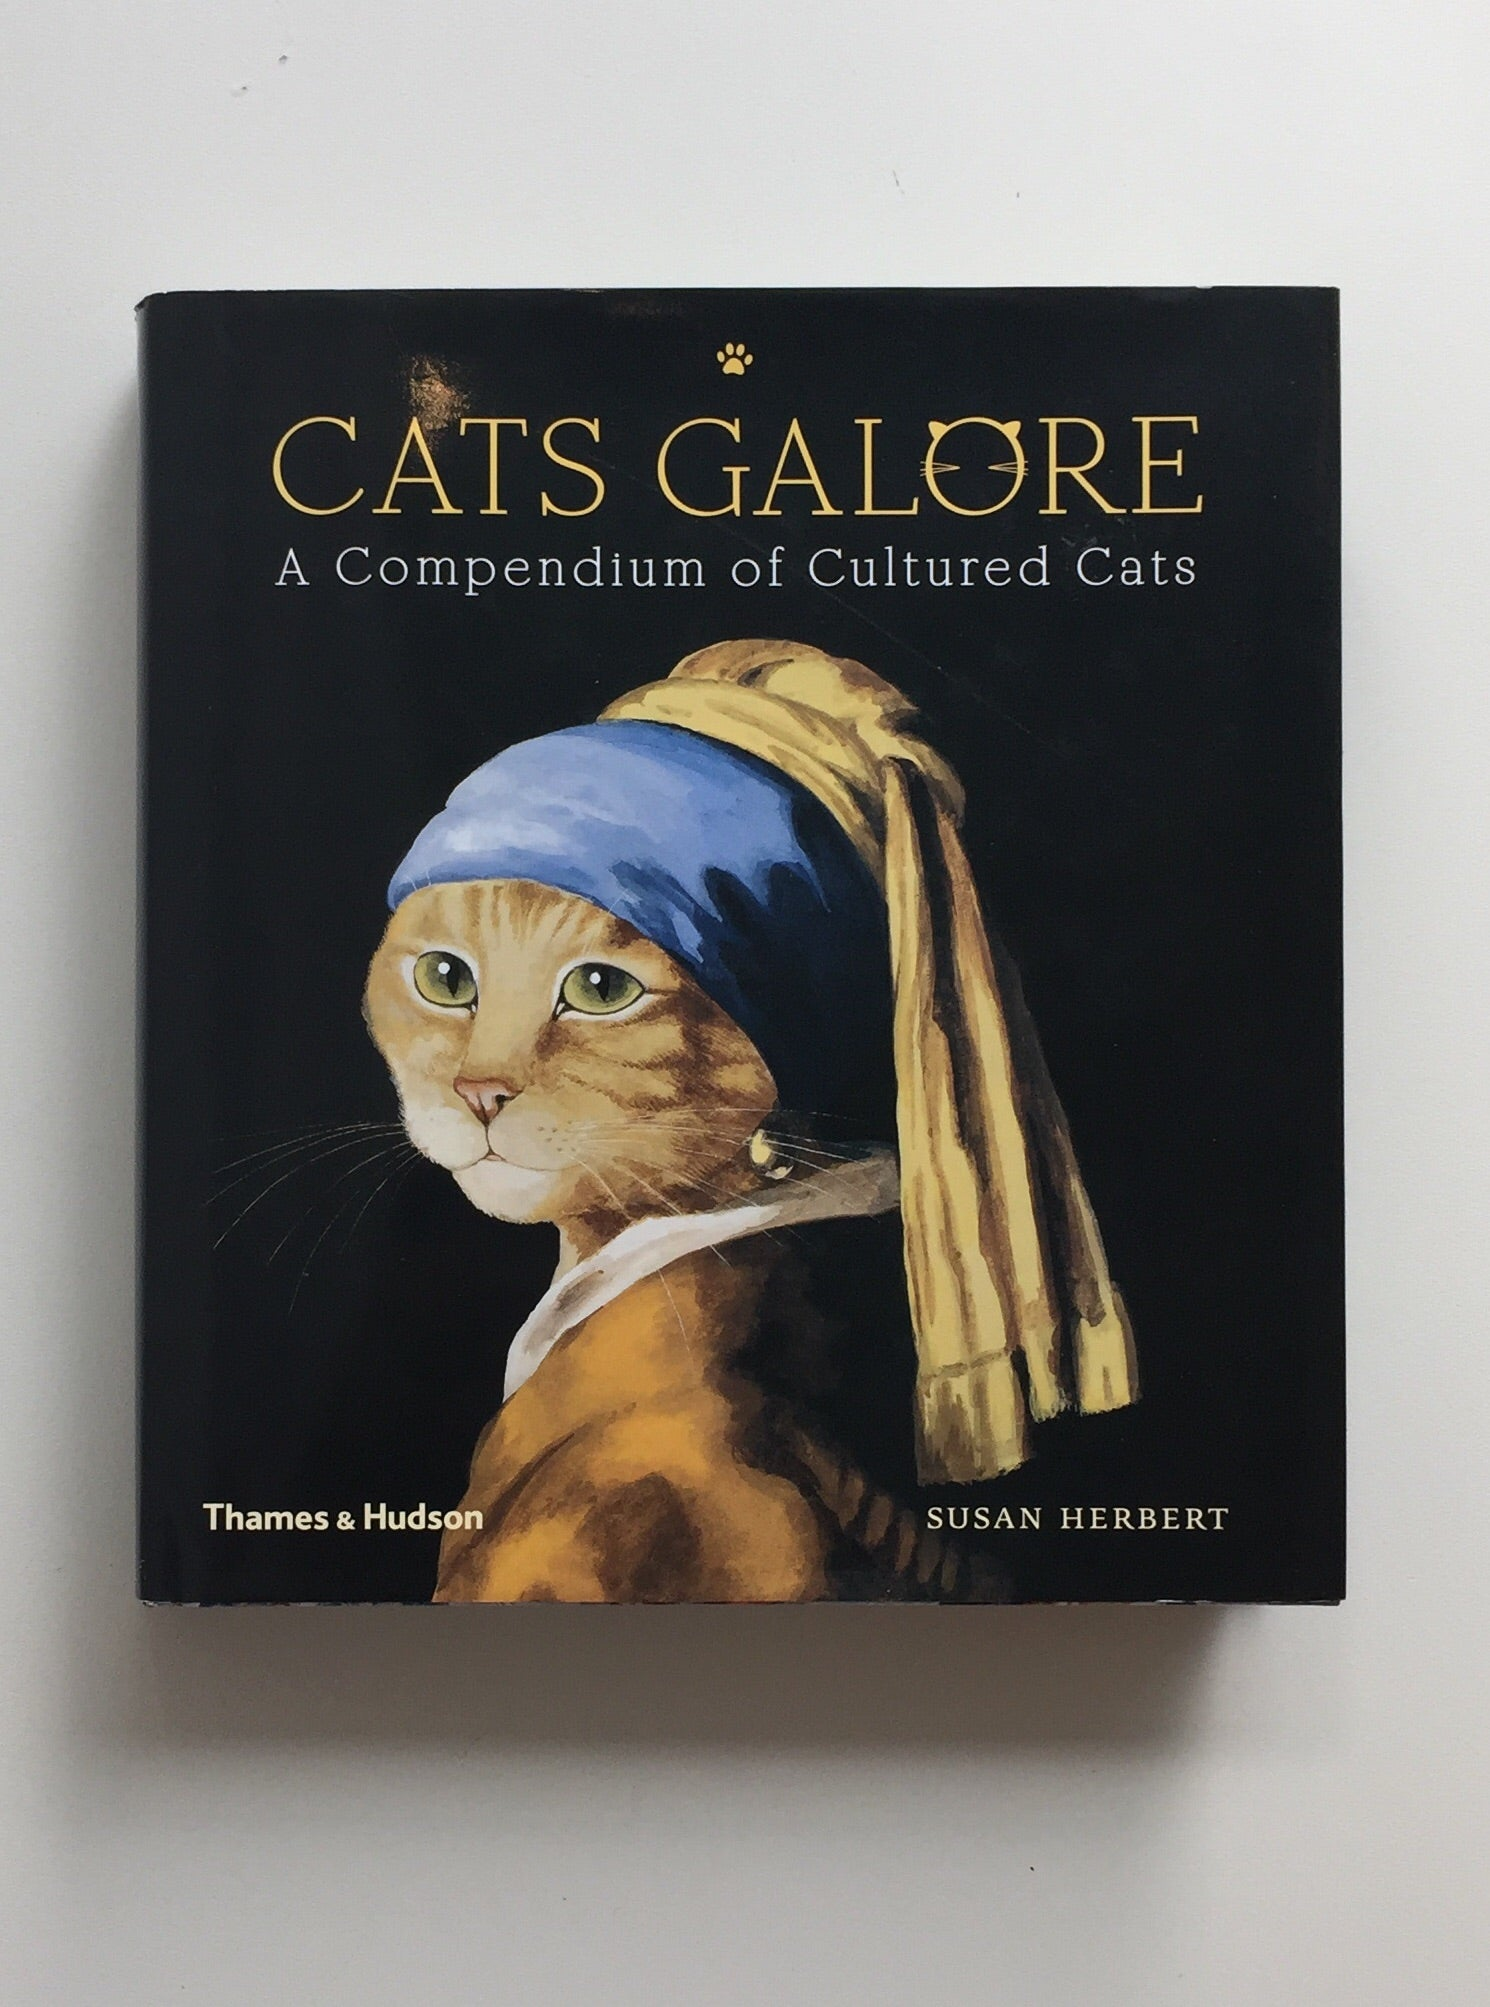 Cats Galore: A Compendium of Cultured Cats by Susan Herbert